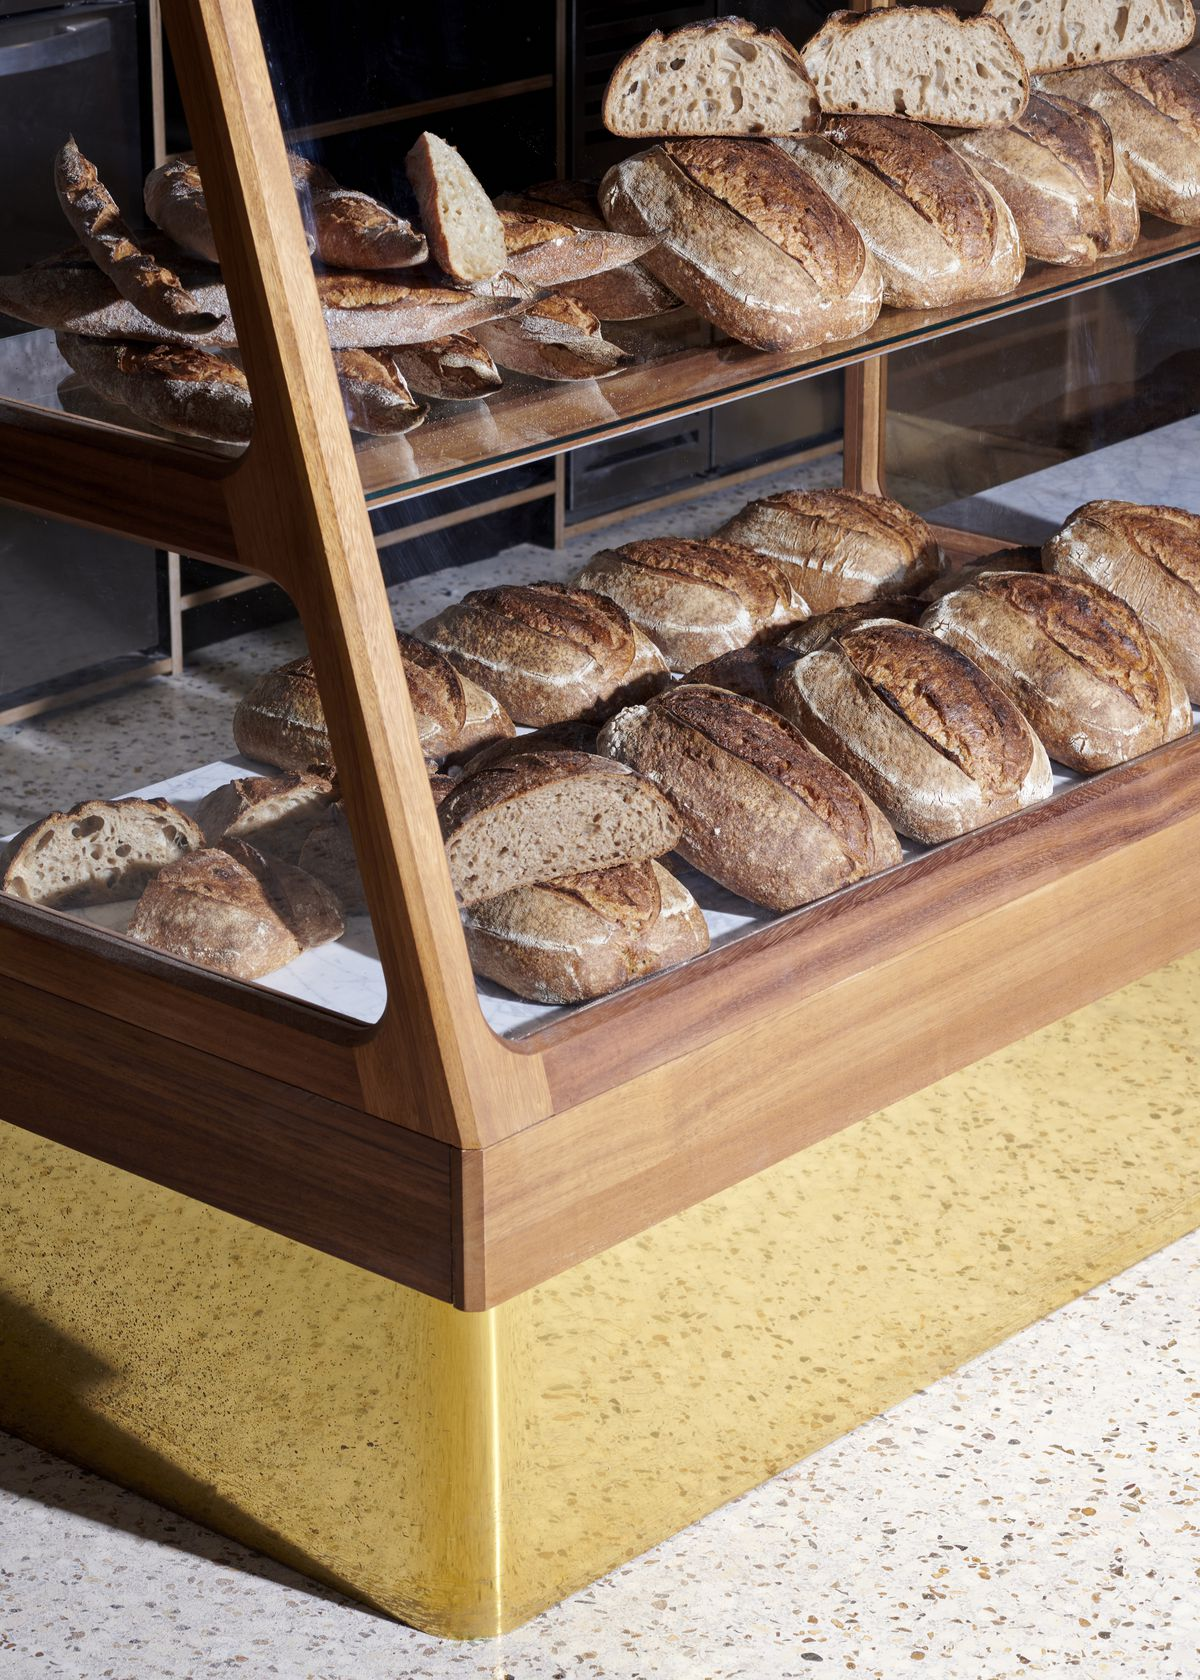 A European-style wooden case holds loaves of sourdough bread, with glass panels on the front.